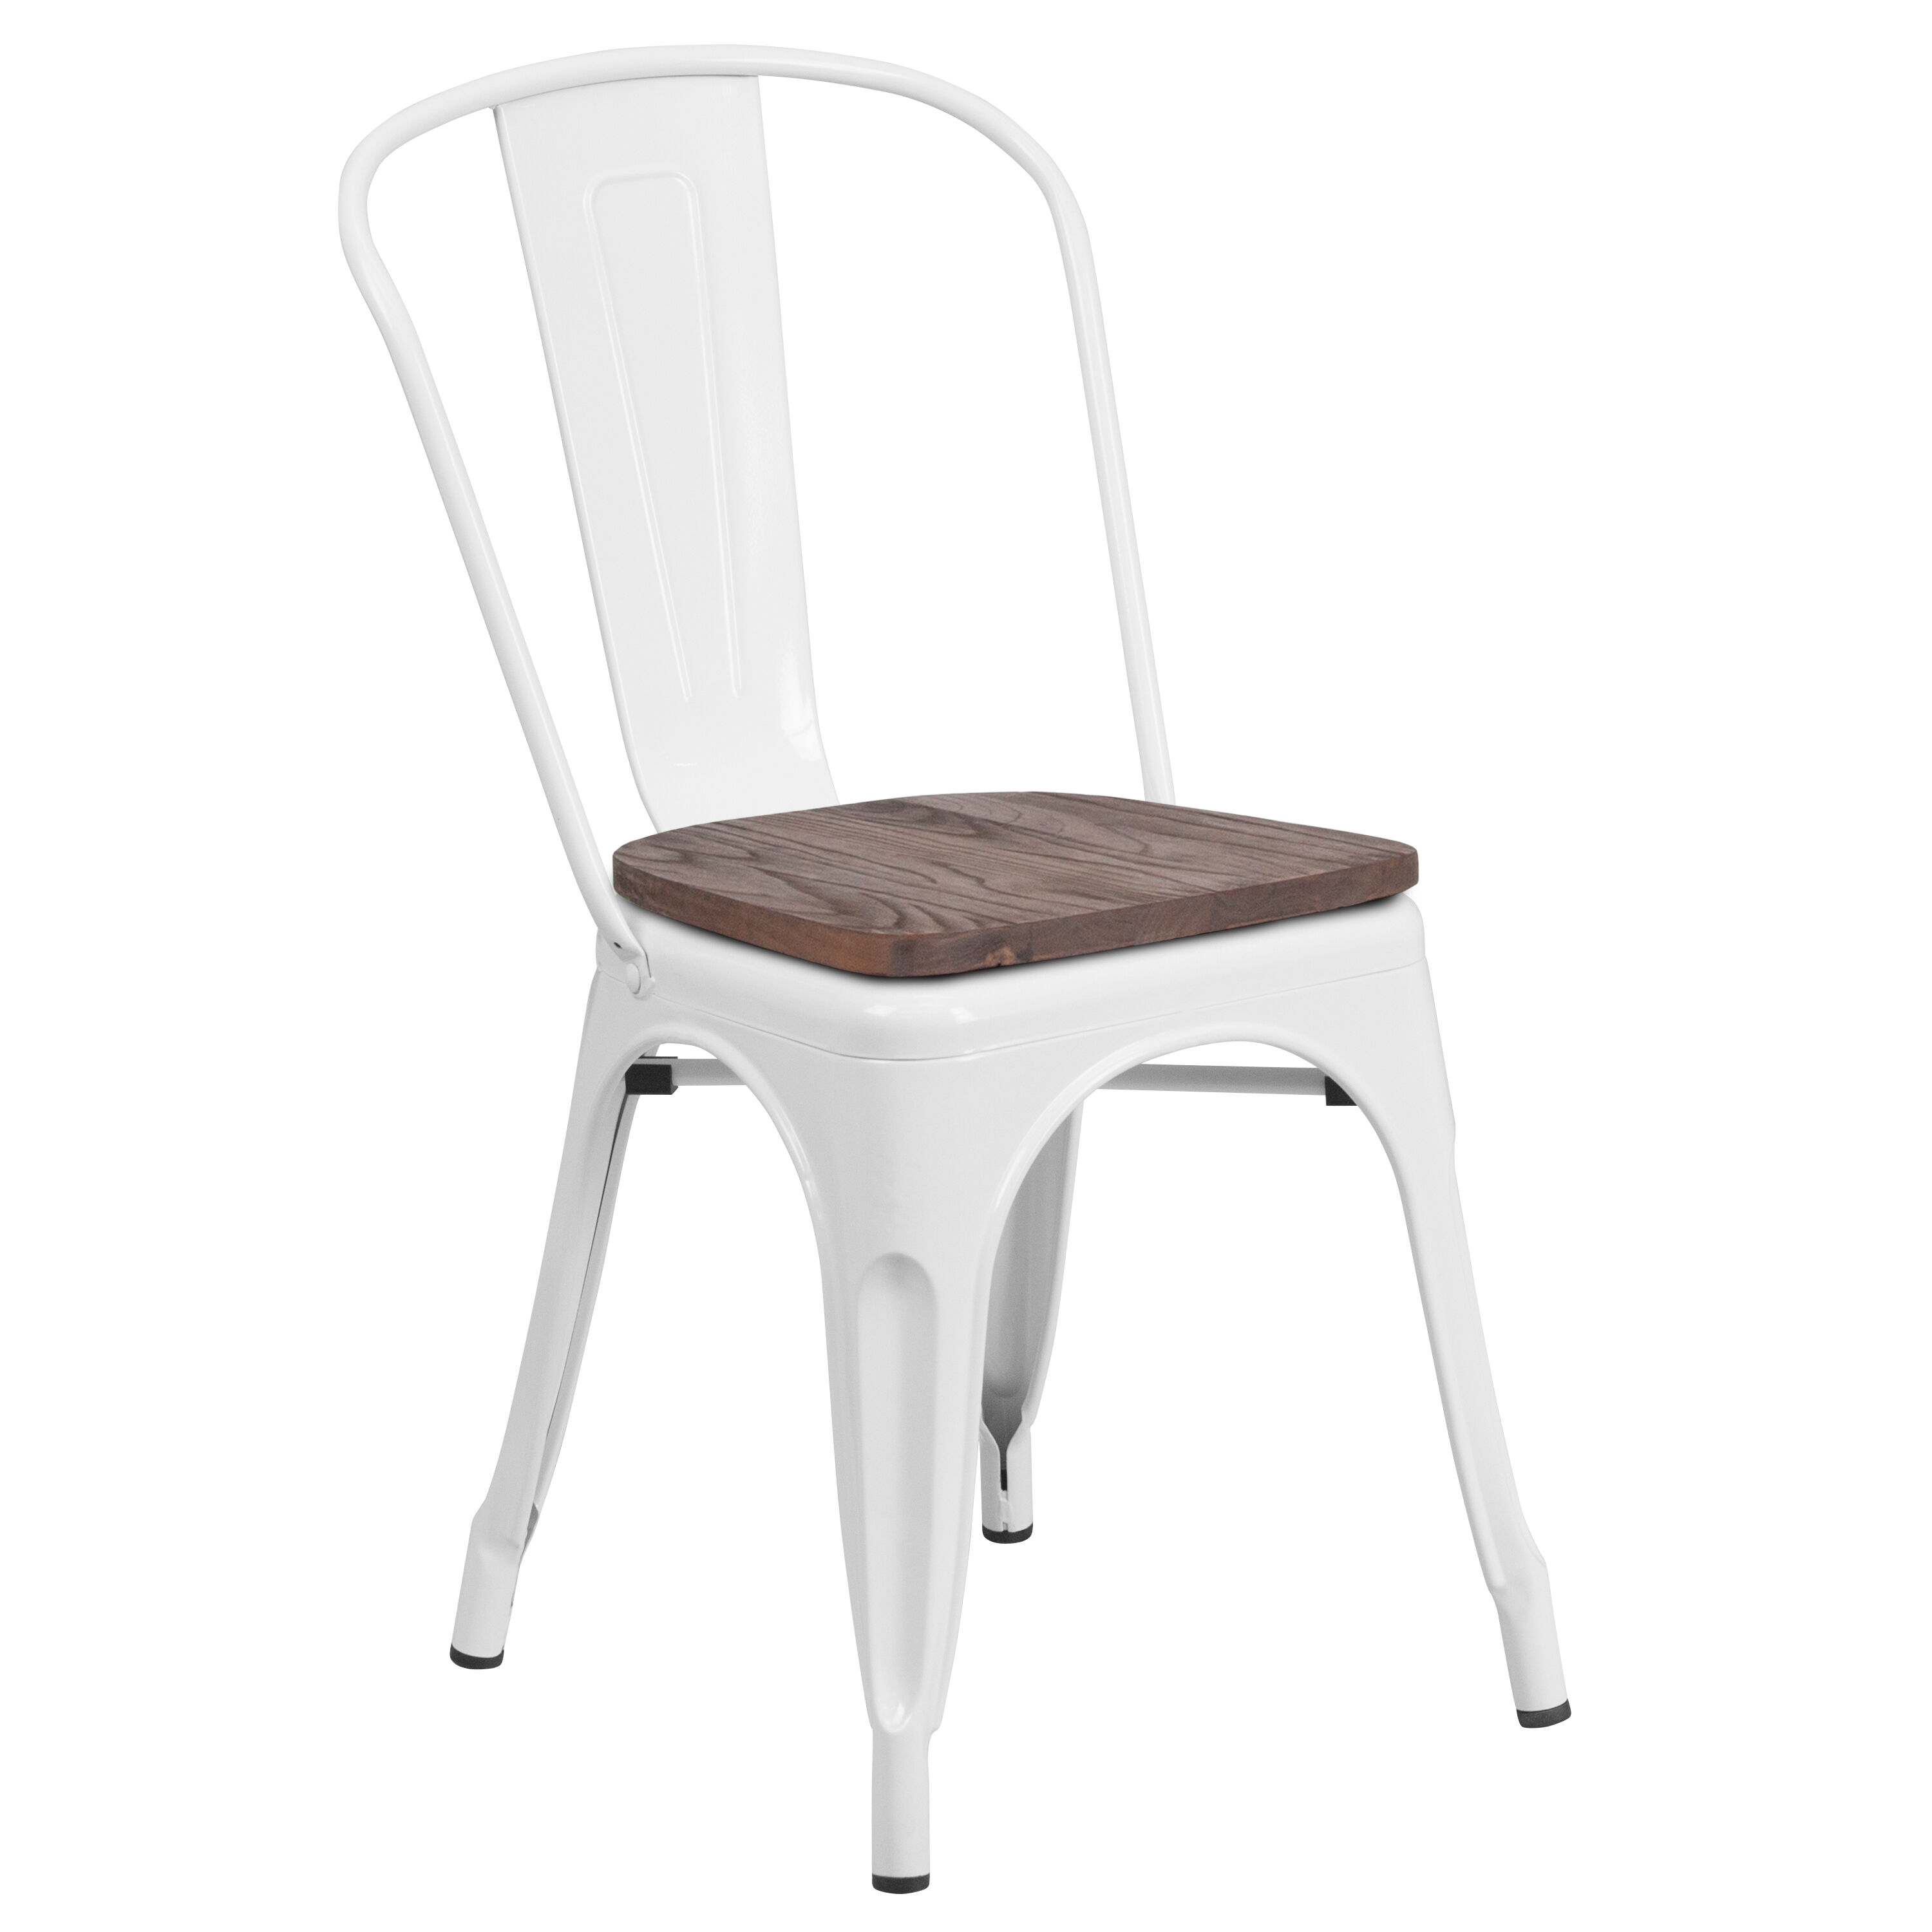 white metal and wood chairs tabouret stacking stack chair ch 31230 wh wd gg